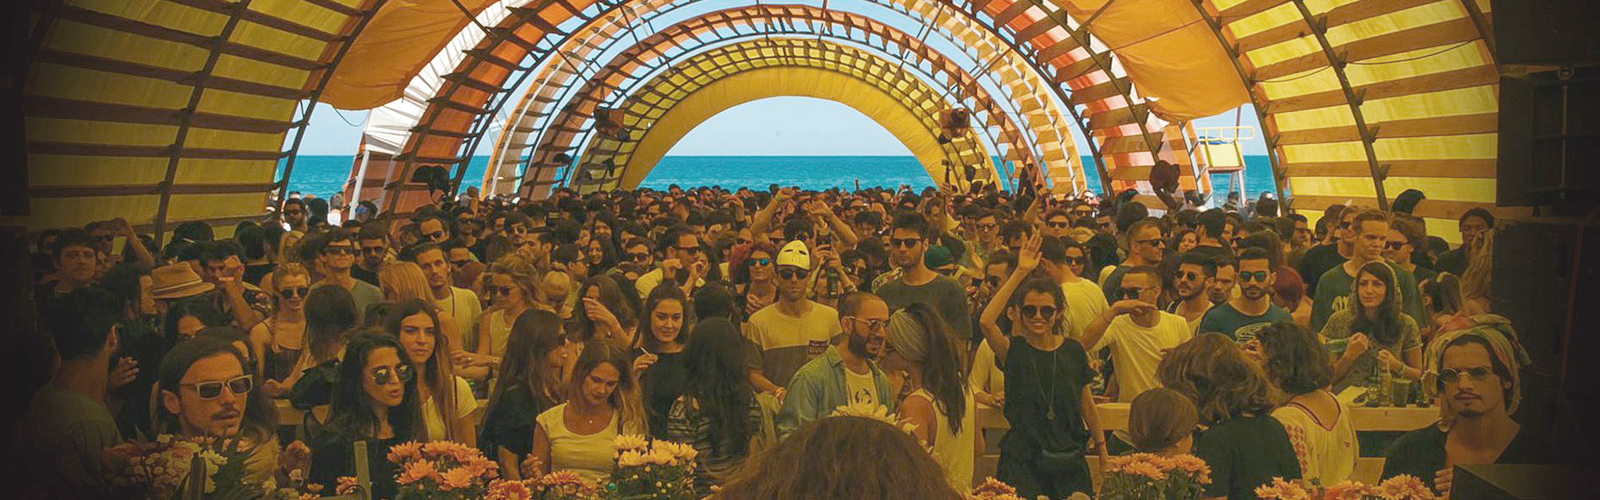 Sunwaves - one of Europe's most acclaimed festivals